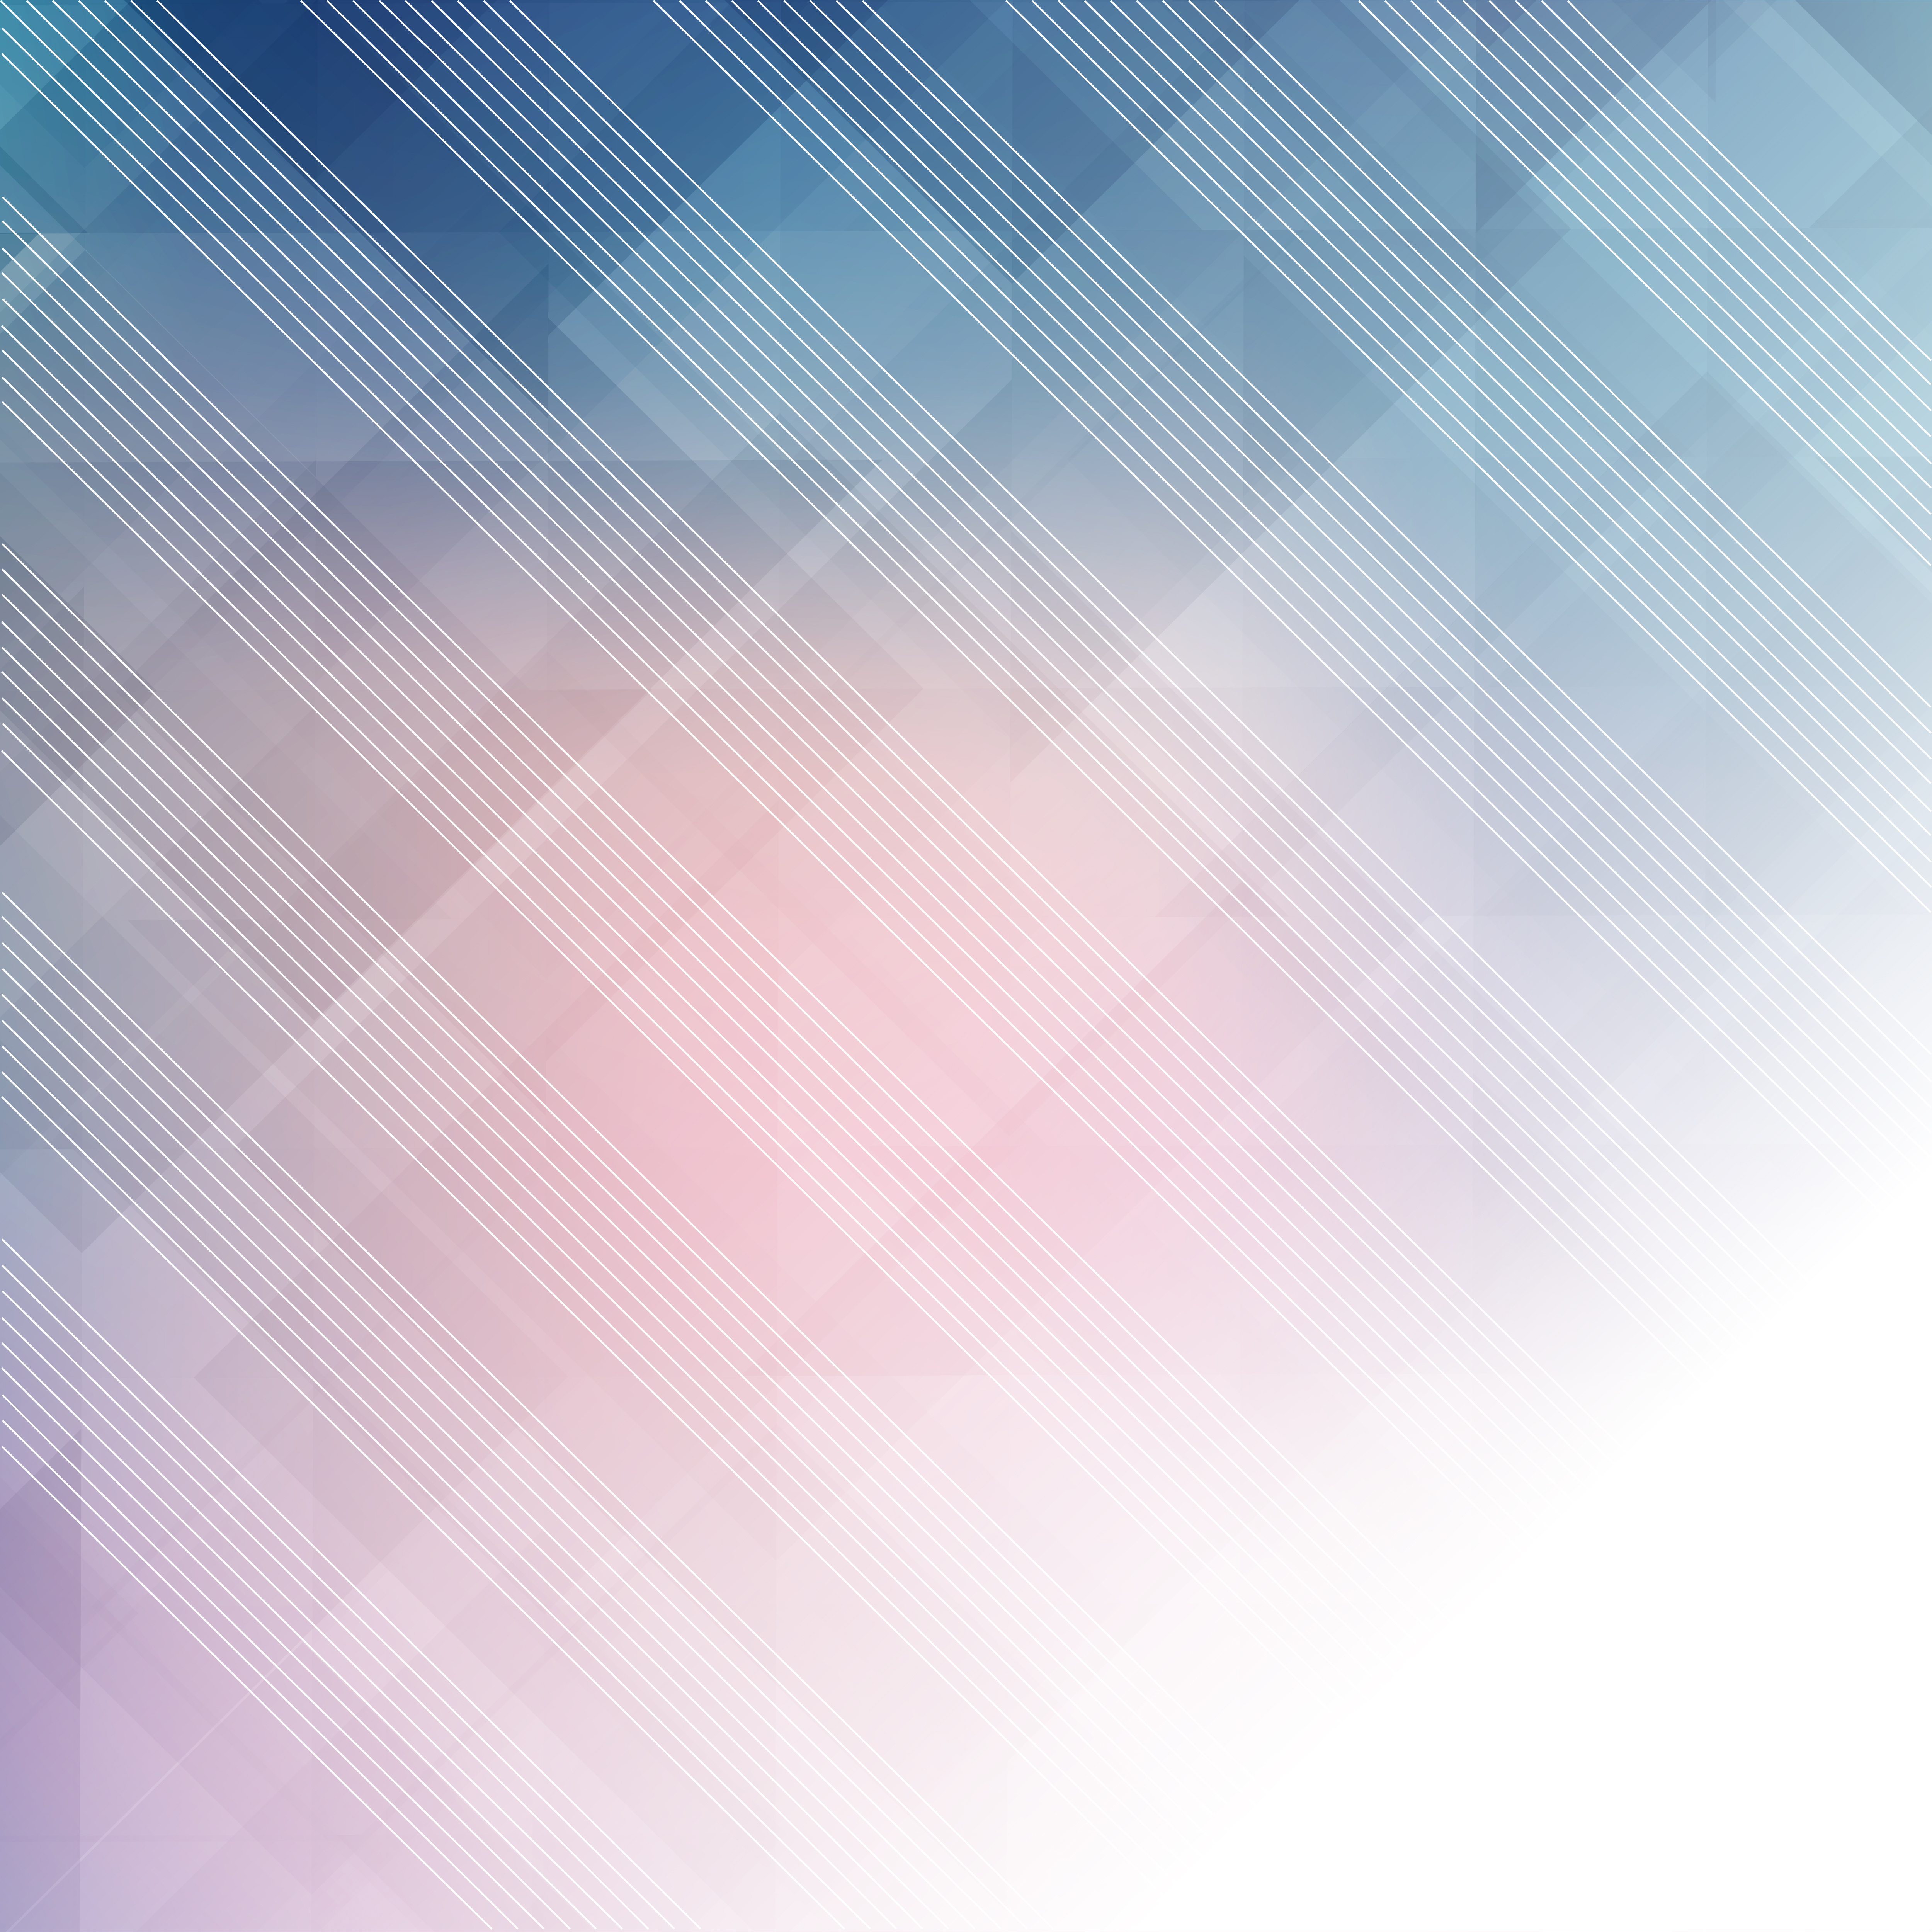 Abstract Pastel Background With Low Poly Design